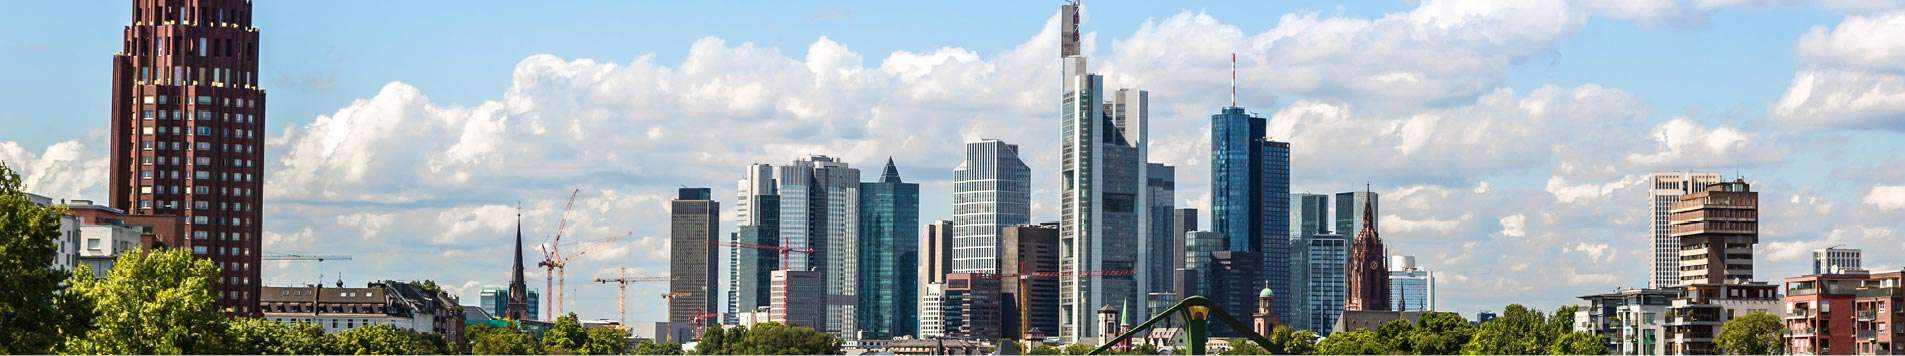 Equity Story Frankfurt am Main